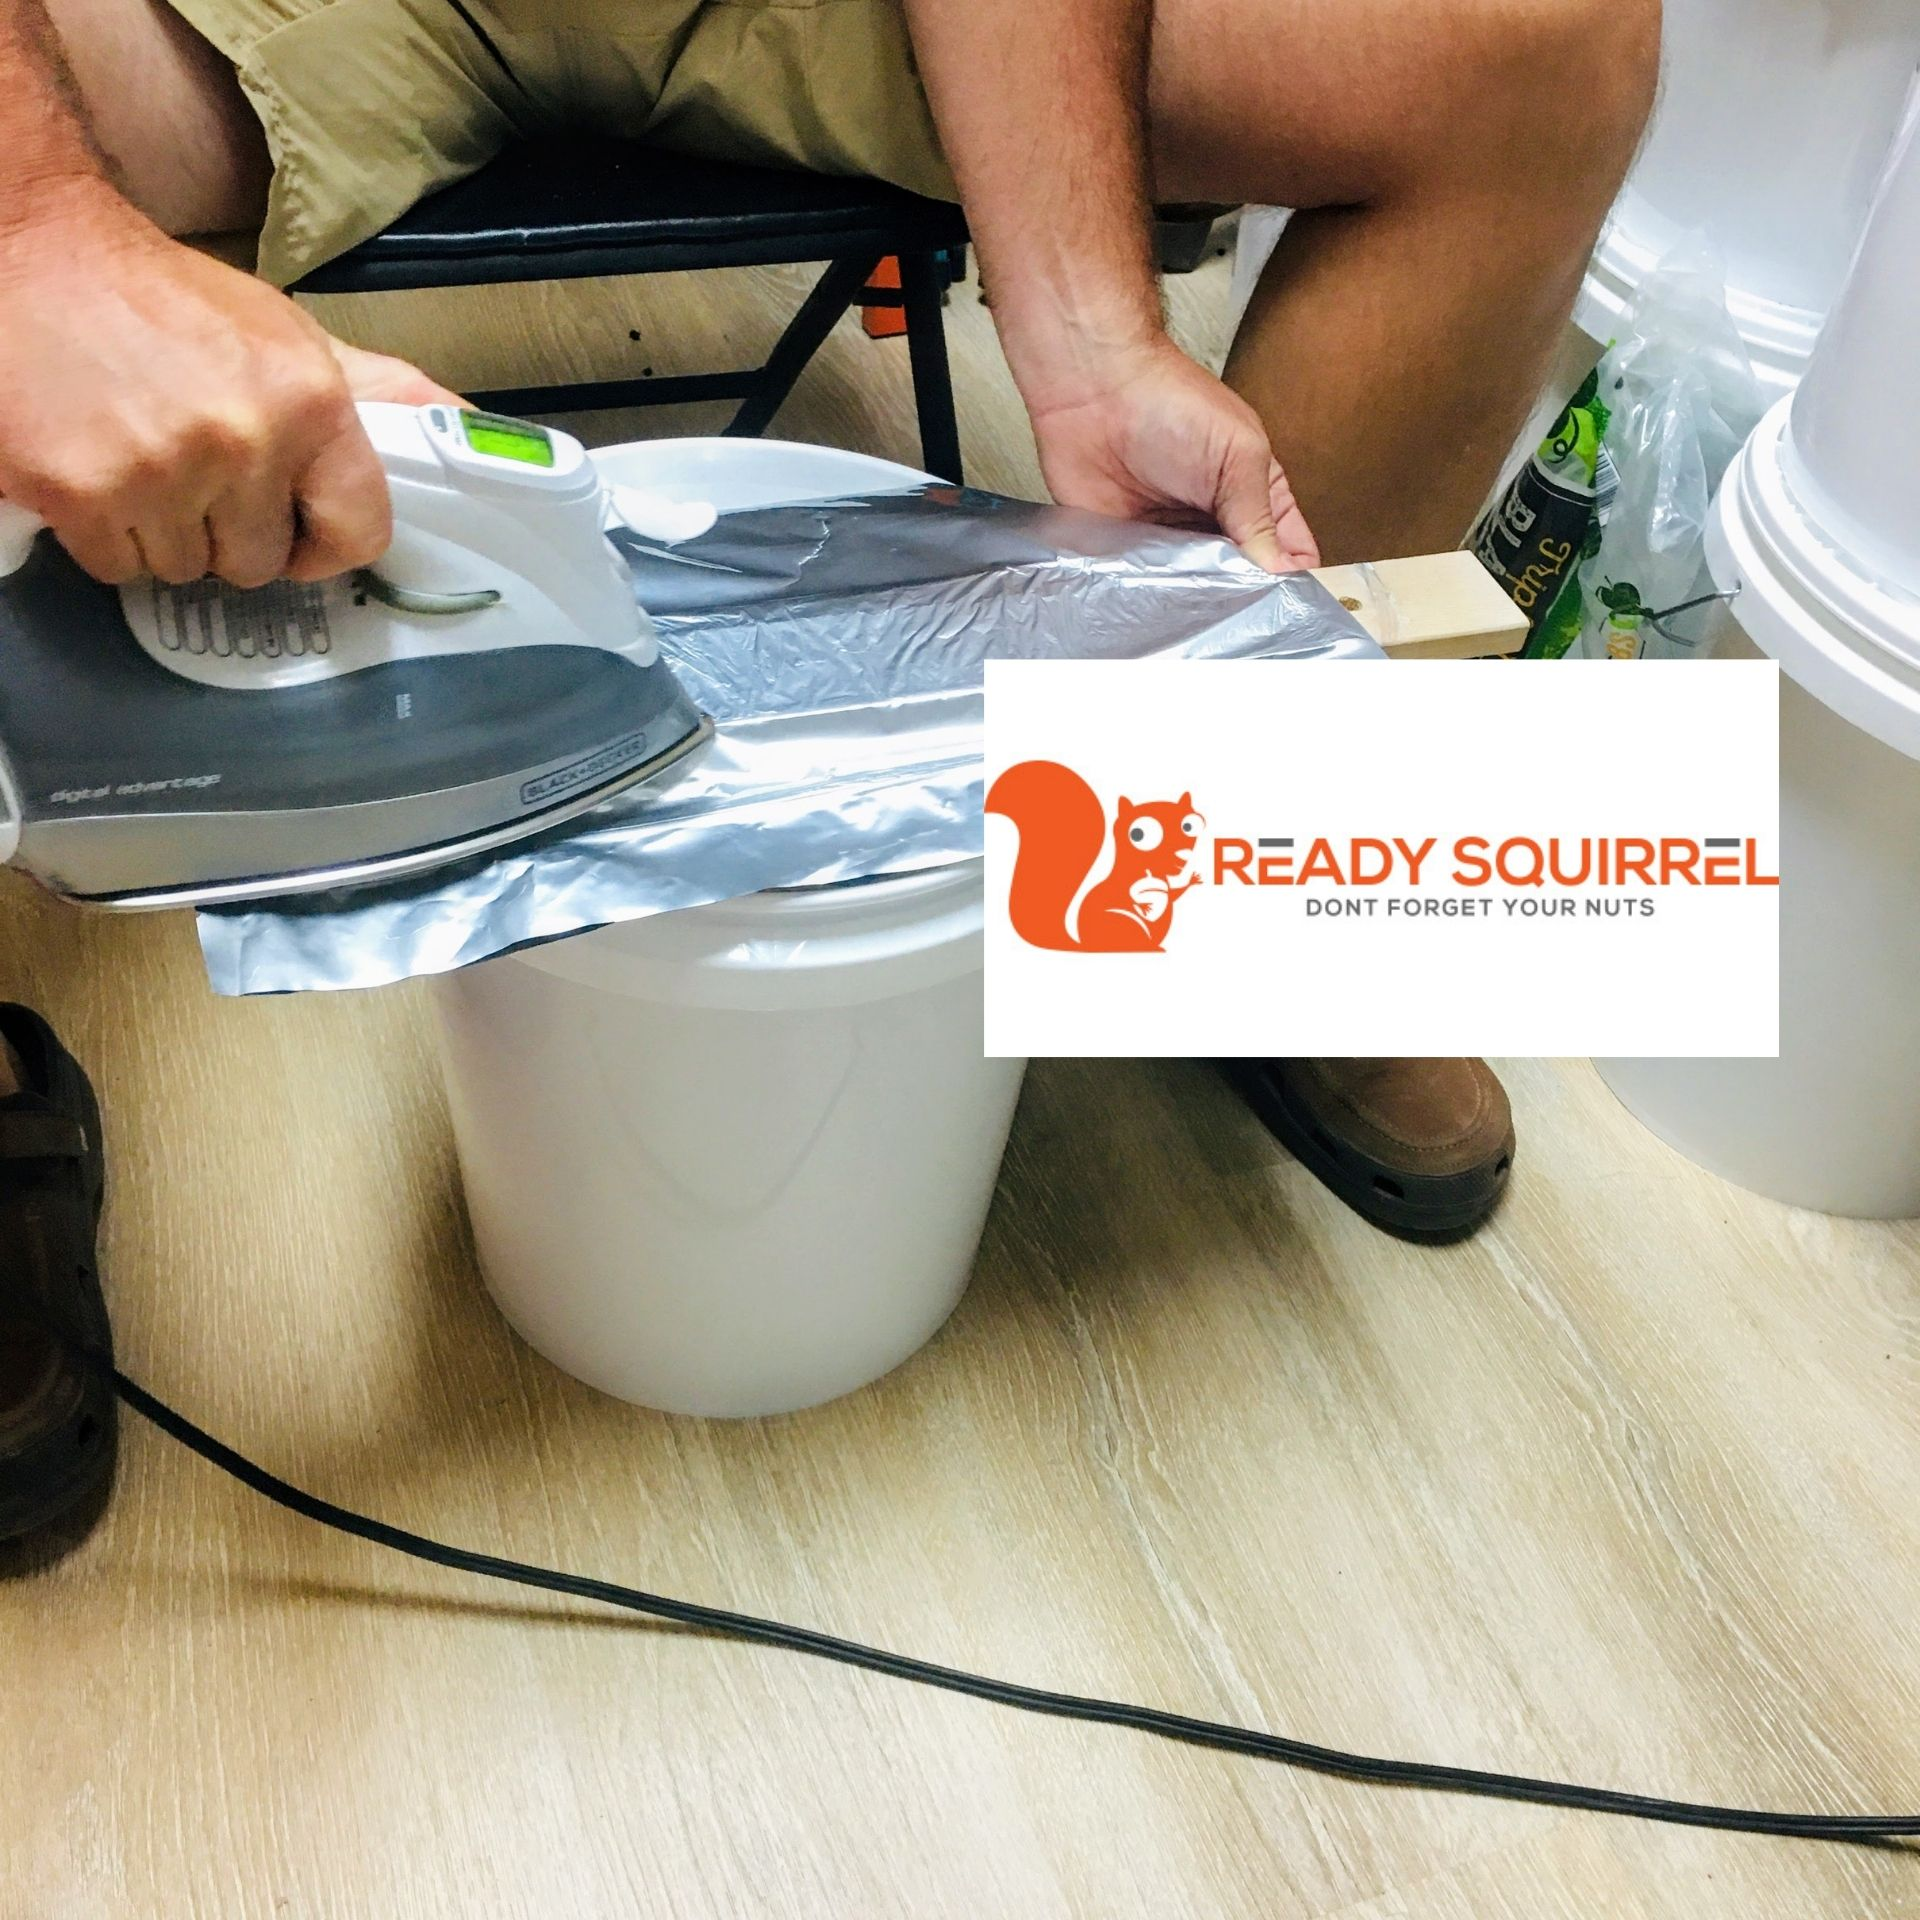 Mylar Bags: The Best DIY Food Storage Container For SHTF